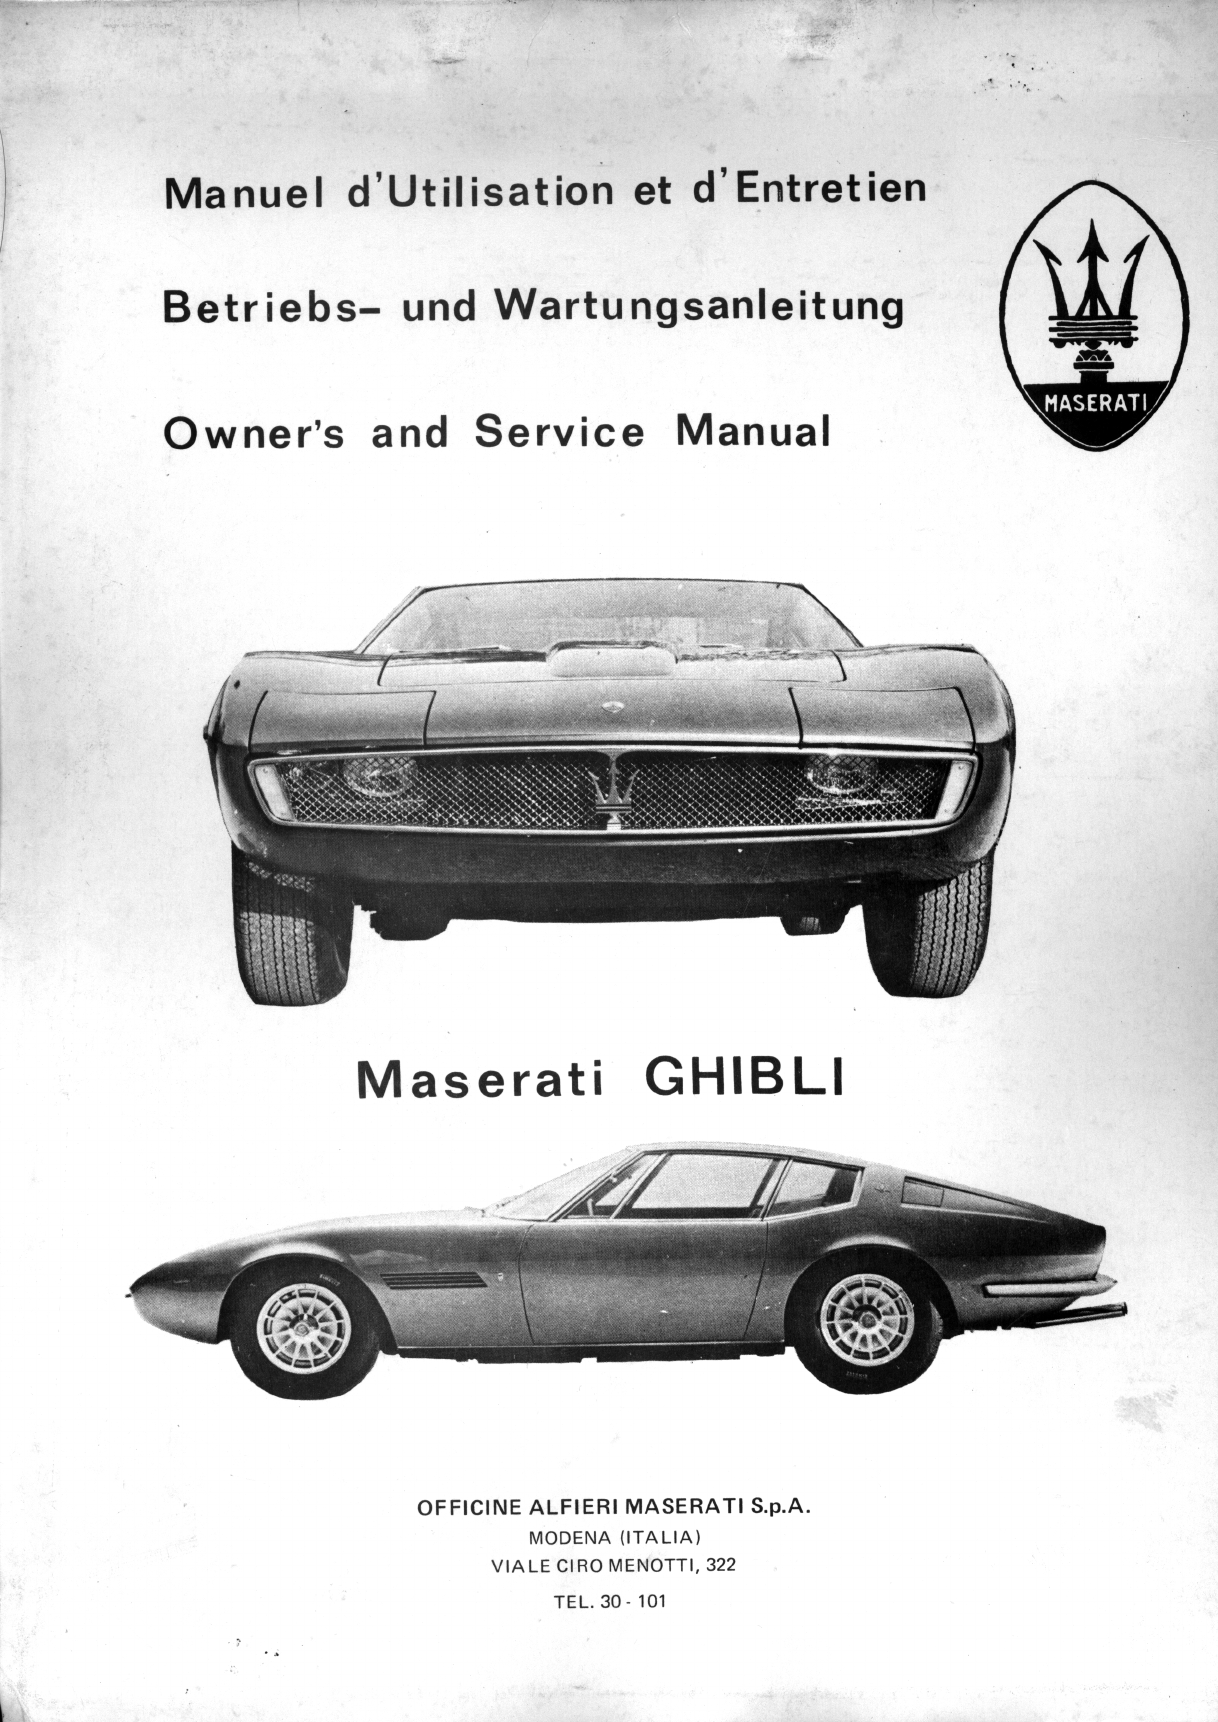 See our other Maserati Ghibli Manuals: